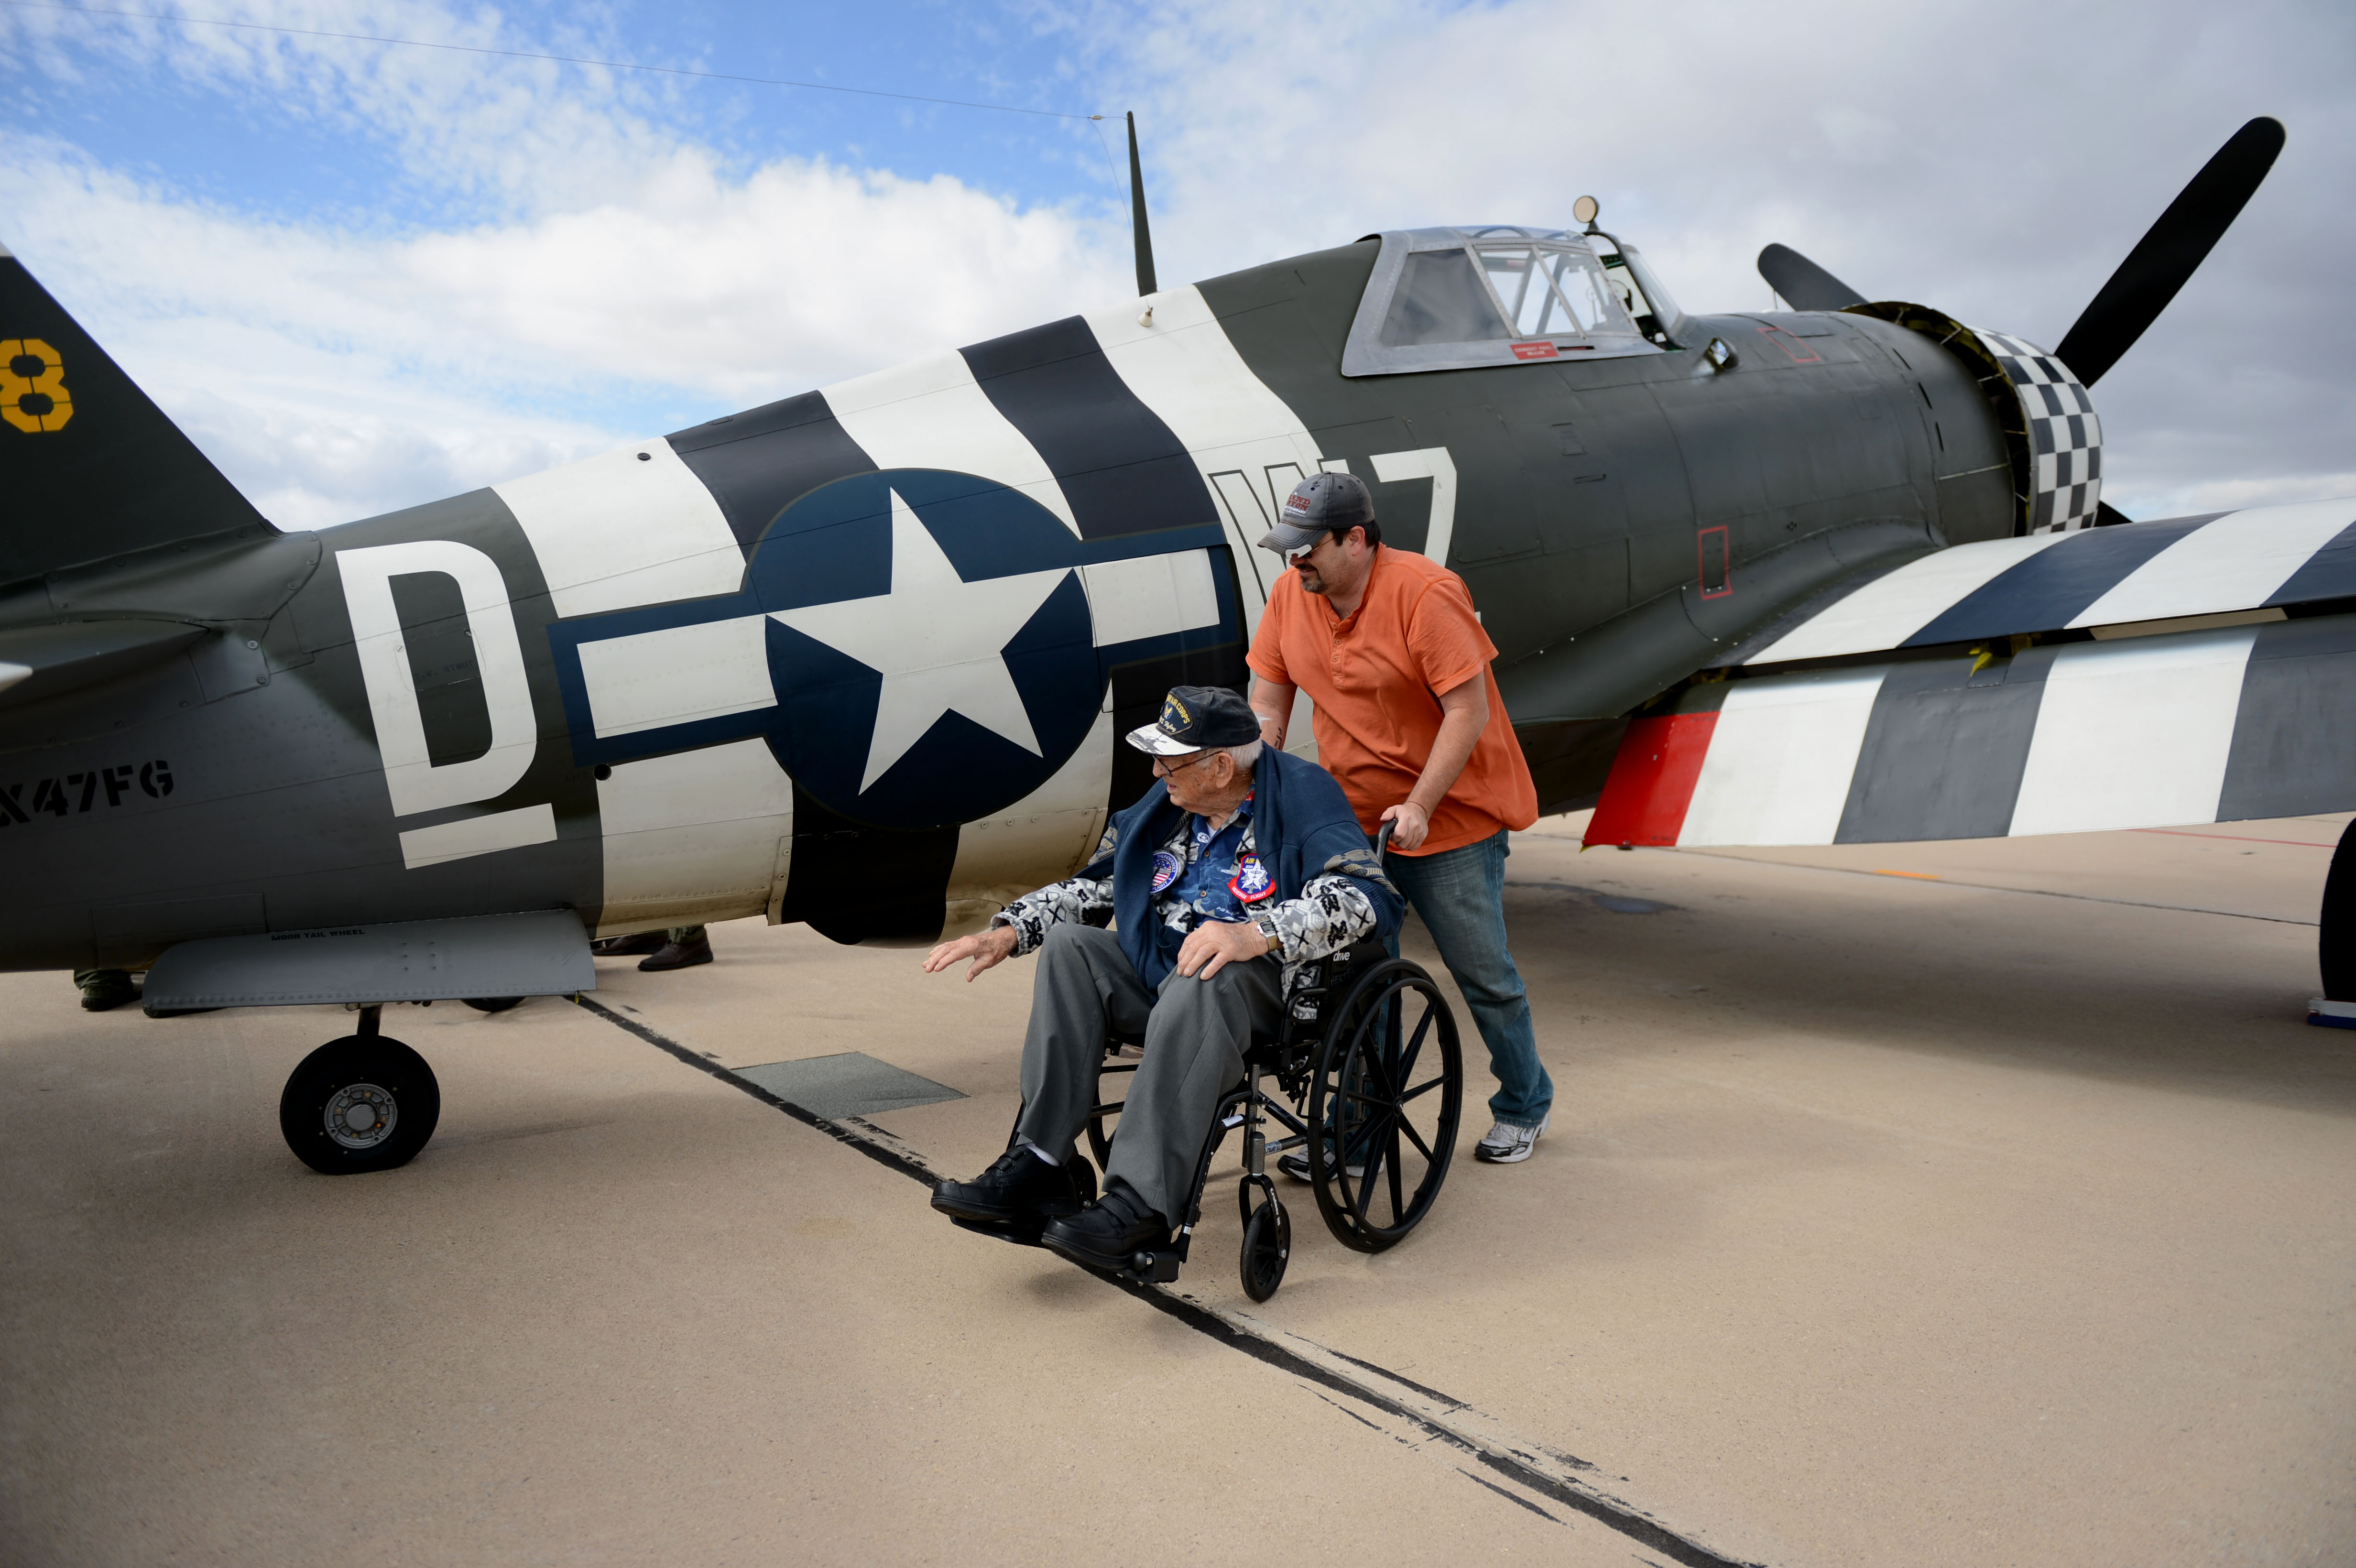 Us Air Force Pay Chart 2015: WWII pilot reunited with P-47 e U.S. Air Force e Article Display,Chart